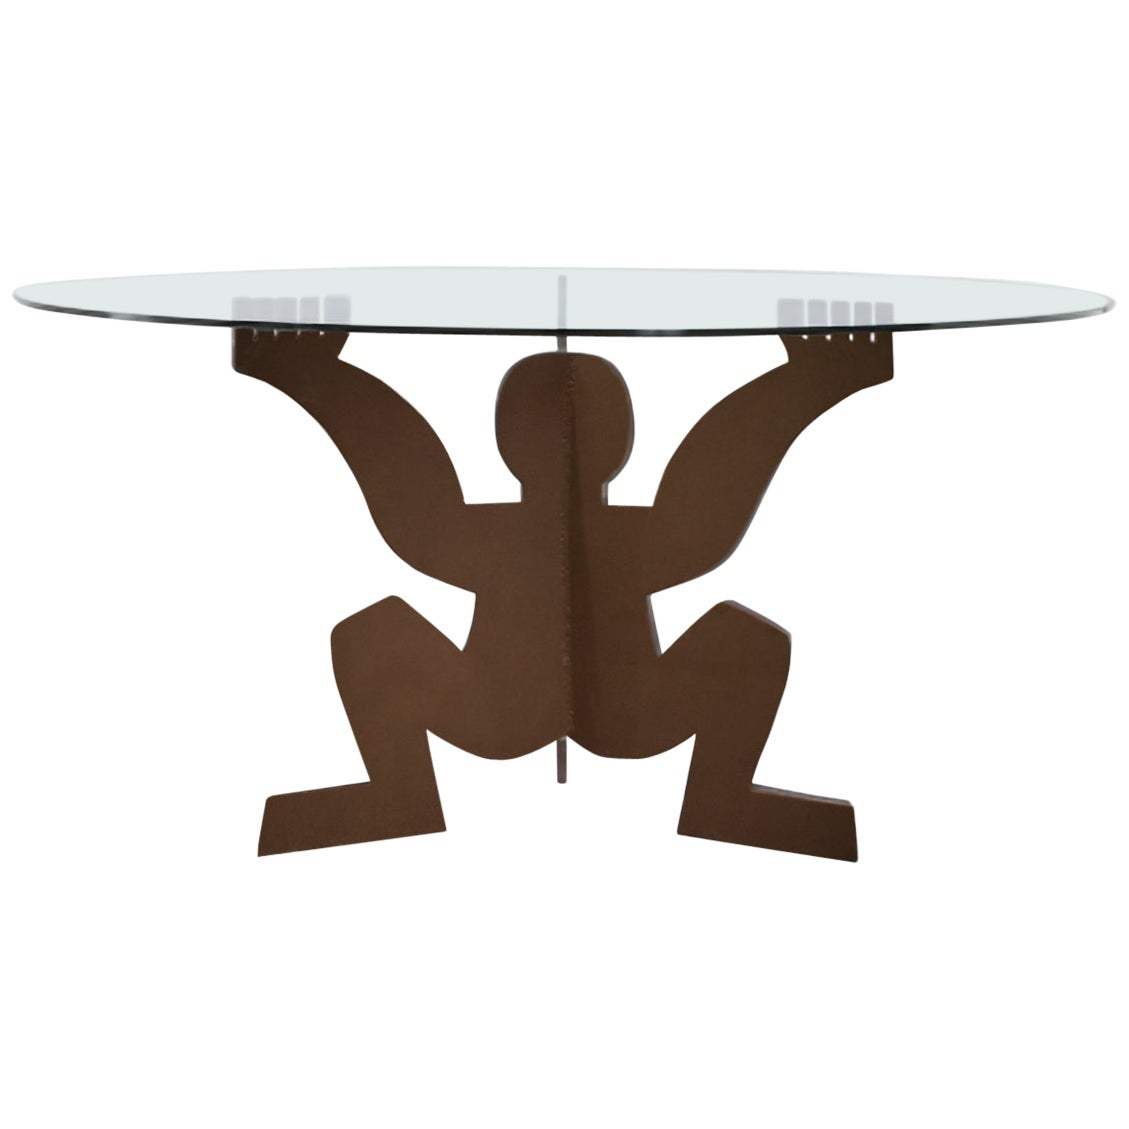 Modern Maurizio Cattelan for Dilmos Round Dining Table Crude Iron Glass